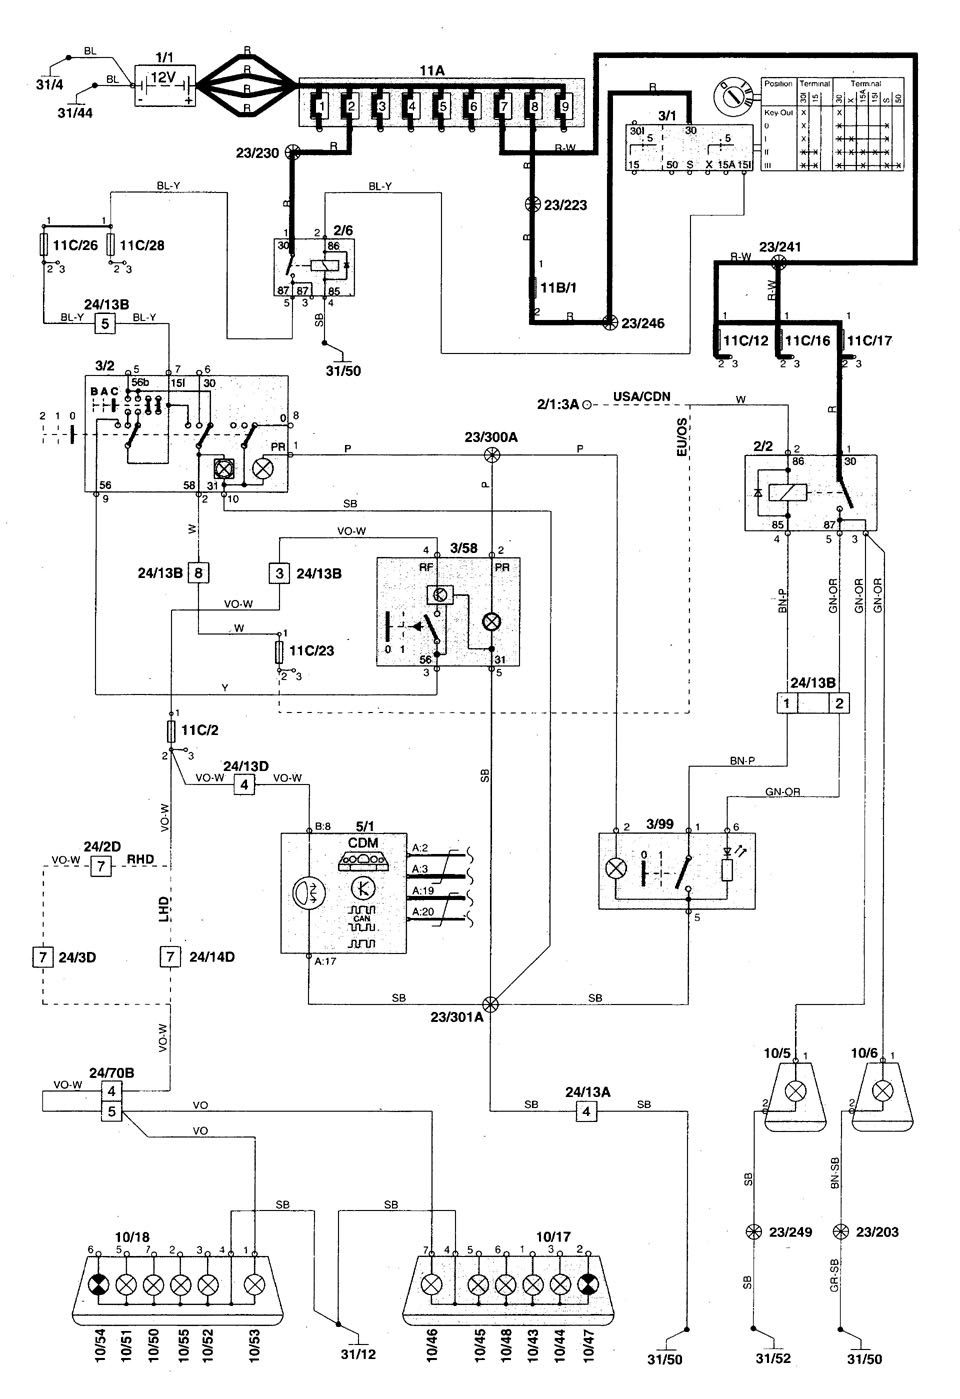 Volvo S70 (1998 - 2000) - wiring diagrams - fog lamps - Carknowledge.info | Volvo Fog Lights Wiring Diagram |  | Carknowledge.info